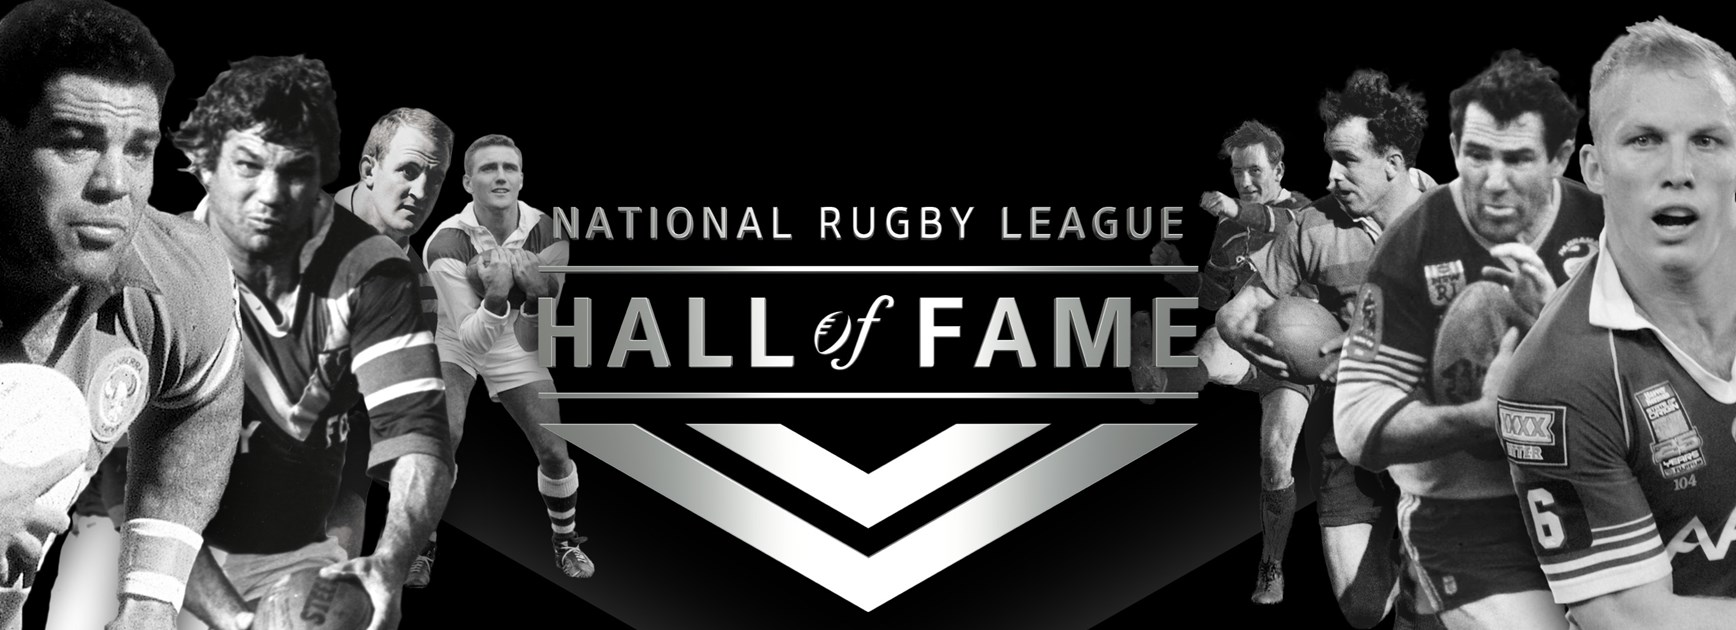 NRL.com honours legends with dedicated Hall of Fame site